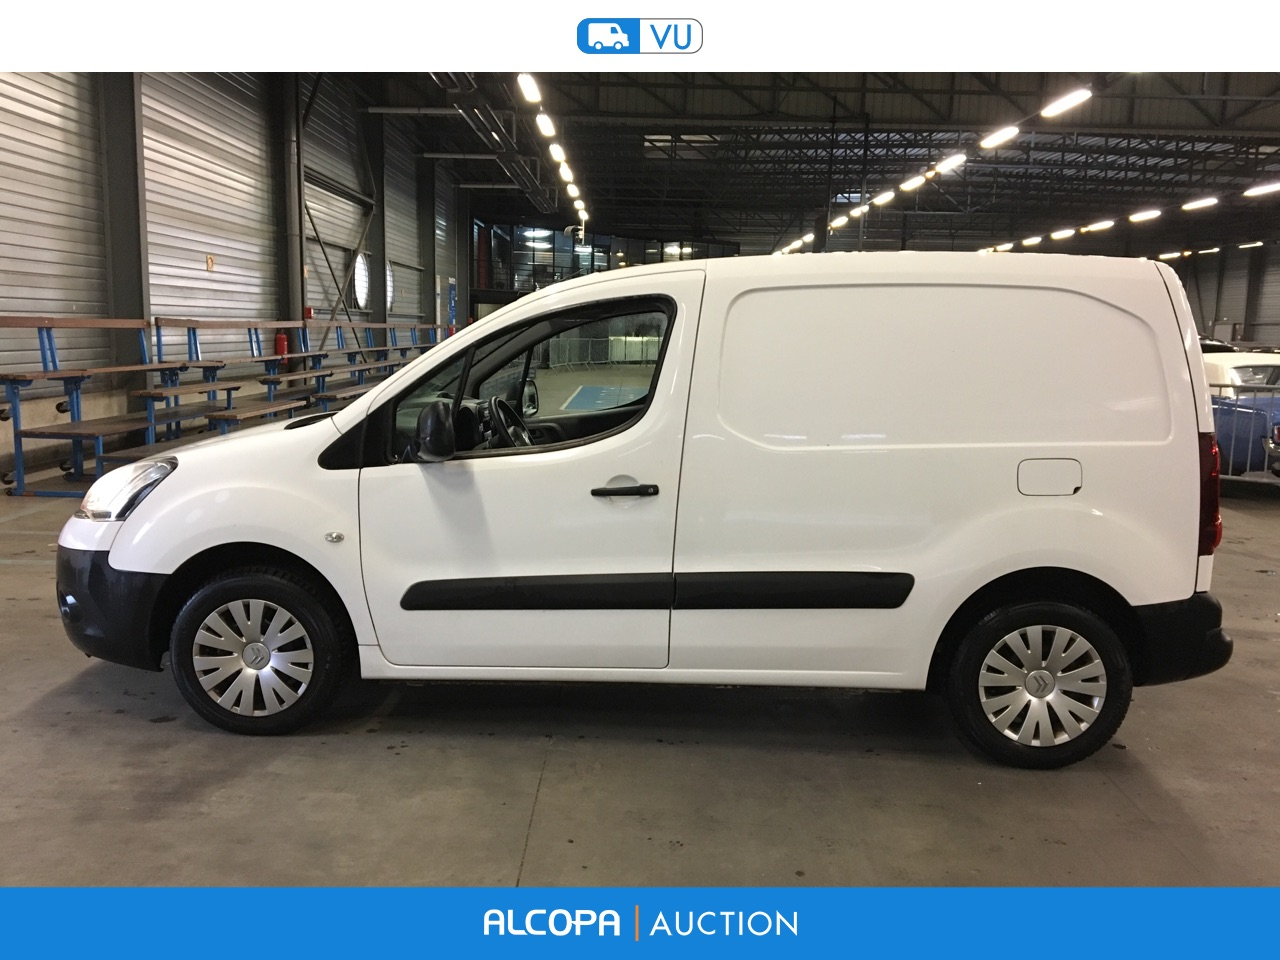 citroen berlingo berlingo 20 l1 hdi 75 business nancy alcopa auction. Black Bedroom Furniture Sets. Home Design Ideas